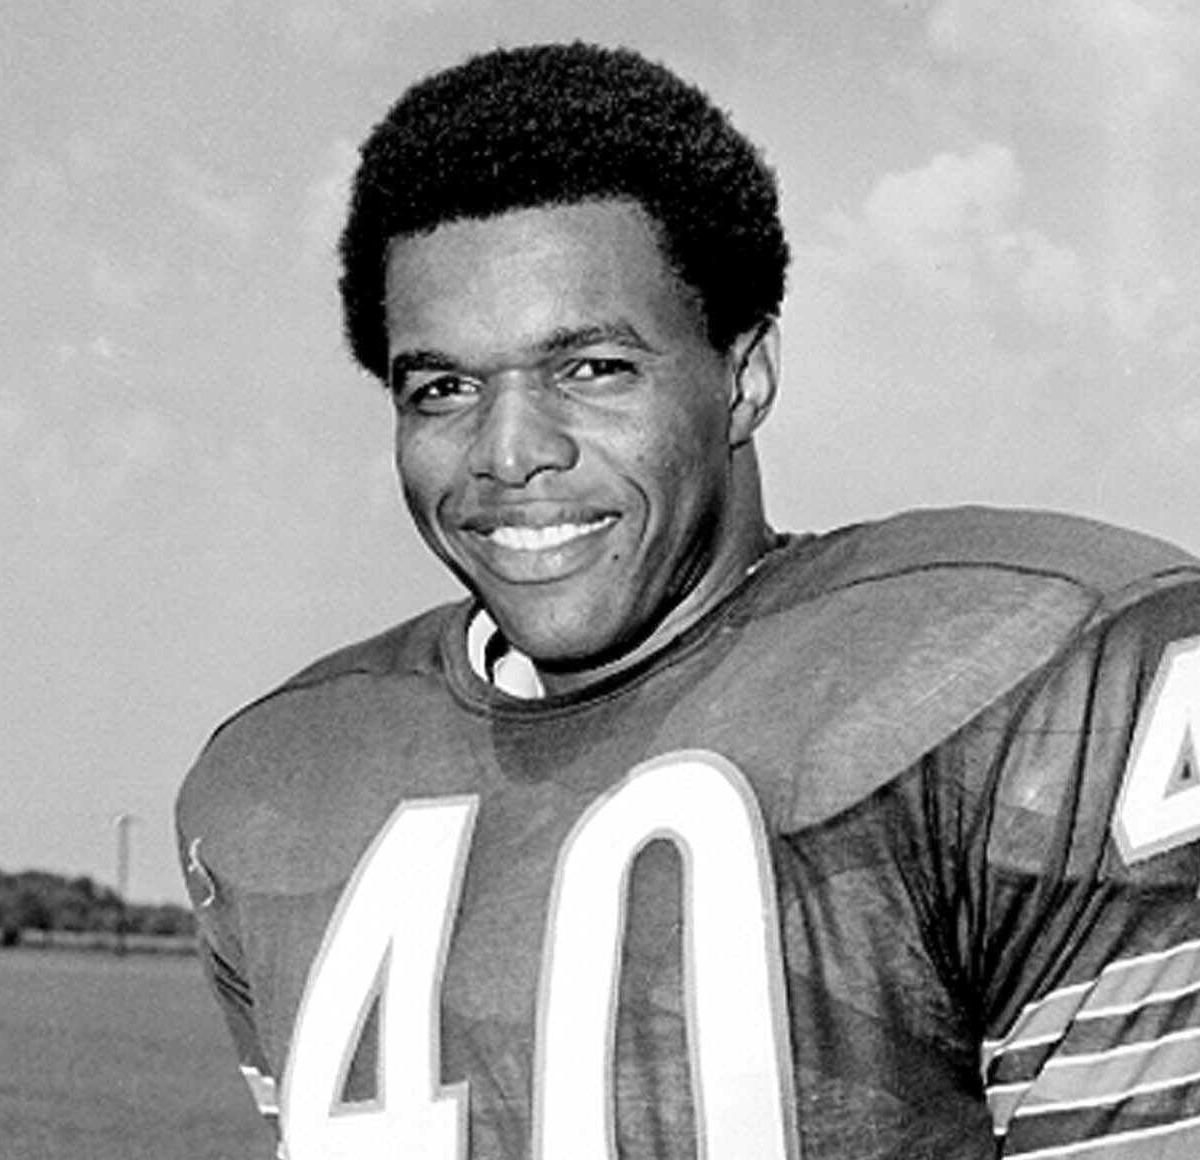 Gale Sayers, Bears Legend and Pro Football Hall of Famer, Dies at Age 77